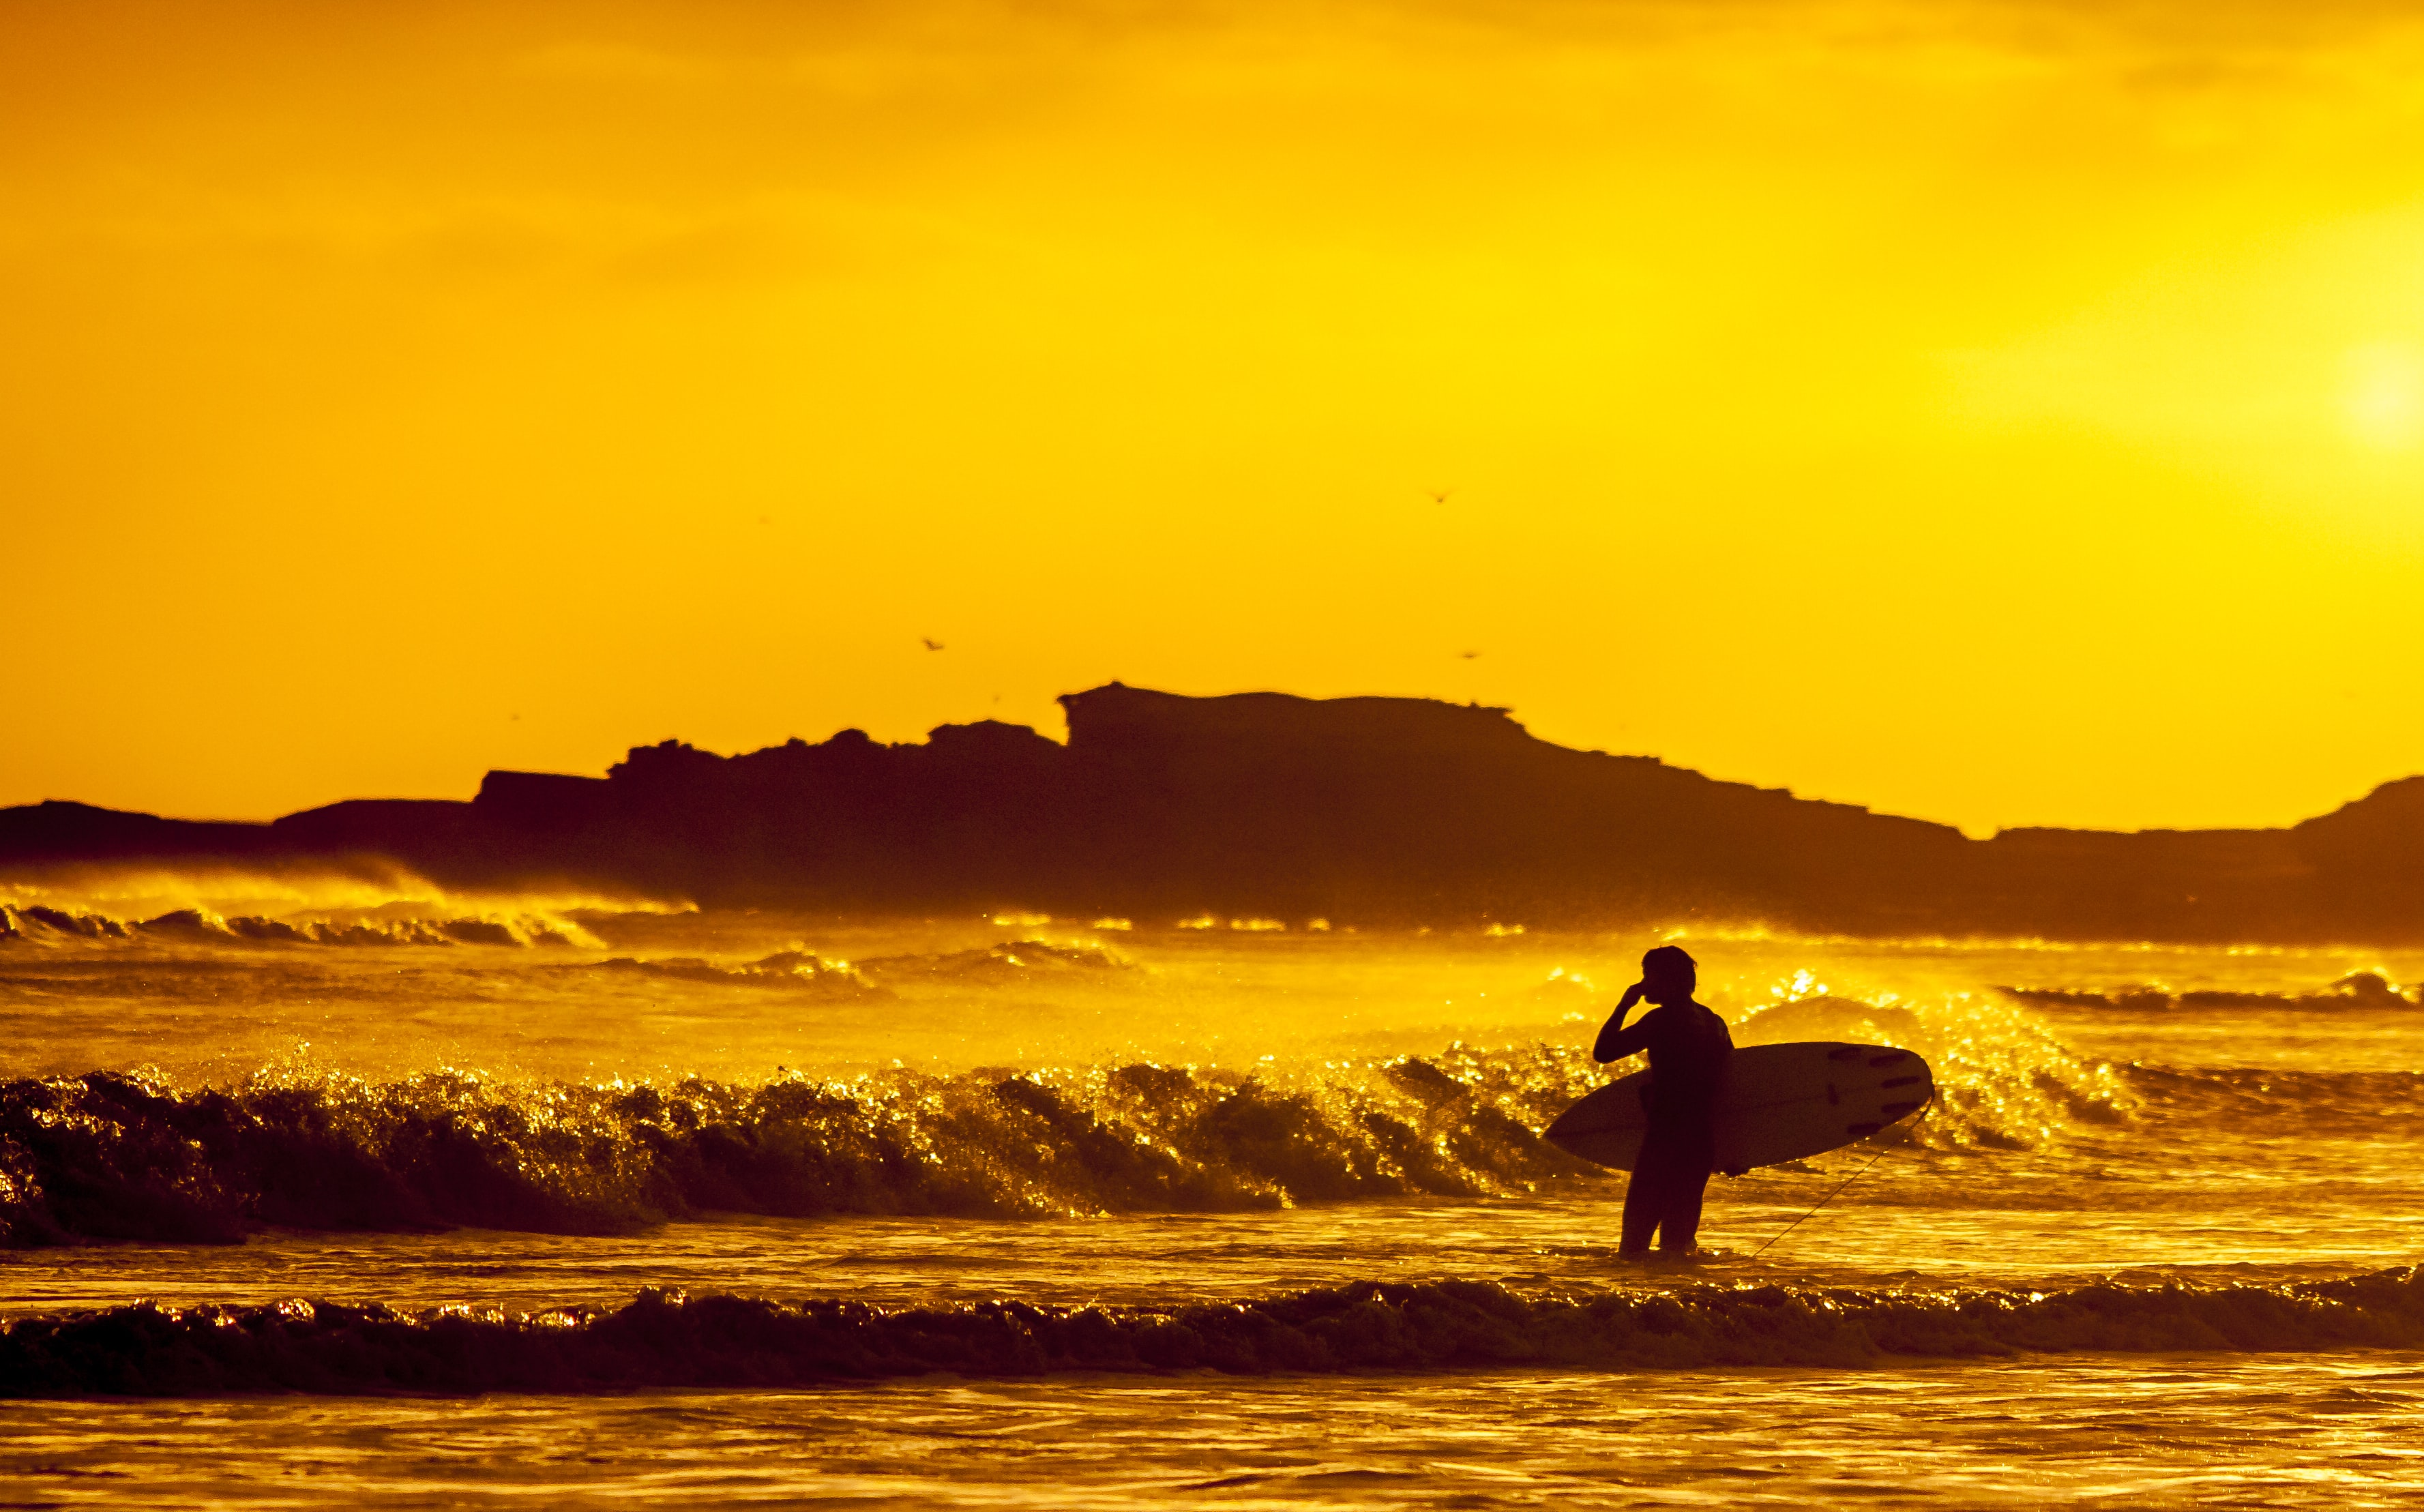 A surfer stood in the sea at sunset, holding a board beneath a vibrant orange dusk sky